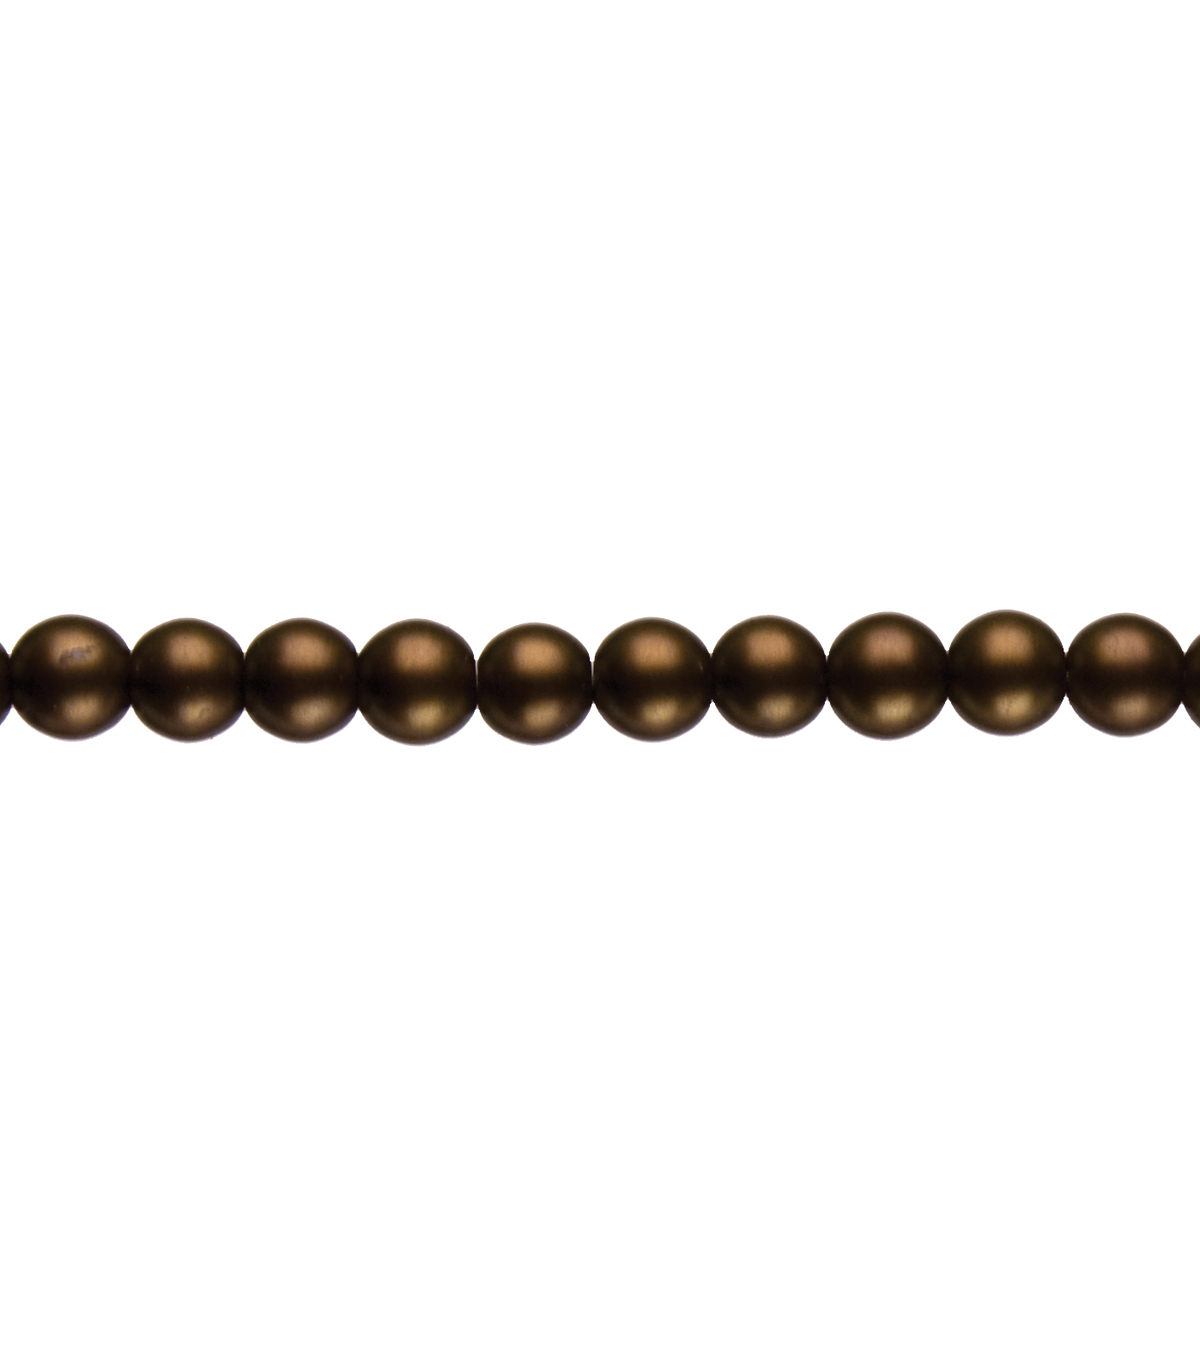 Cousin Jewelry Basics 8mm Round Matte Beads 80/Pkg-Brown